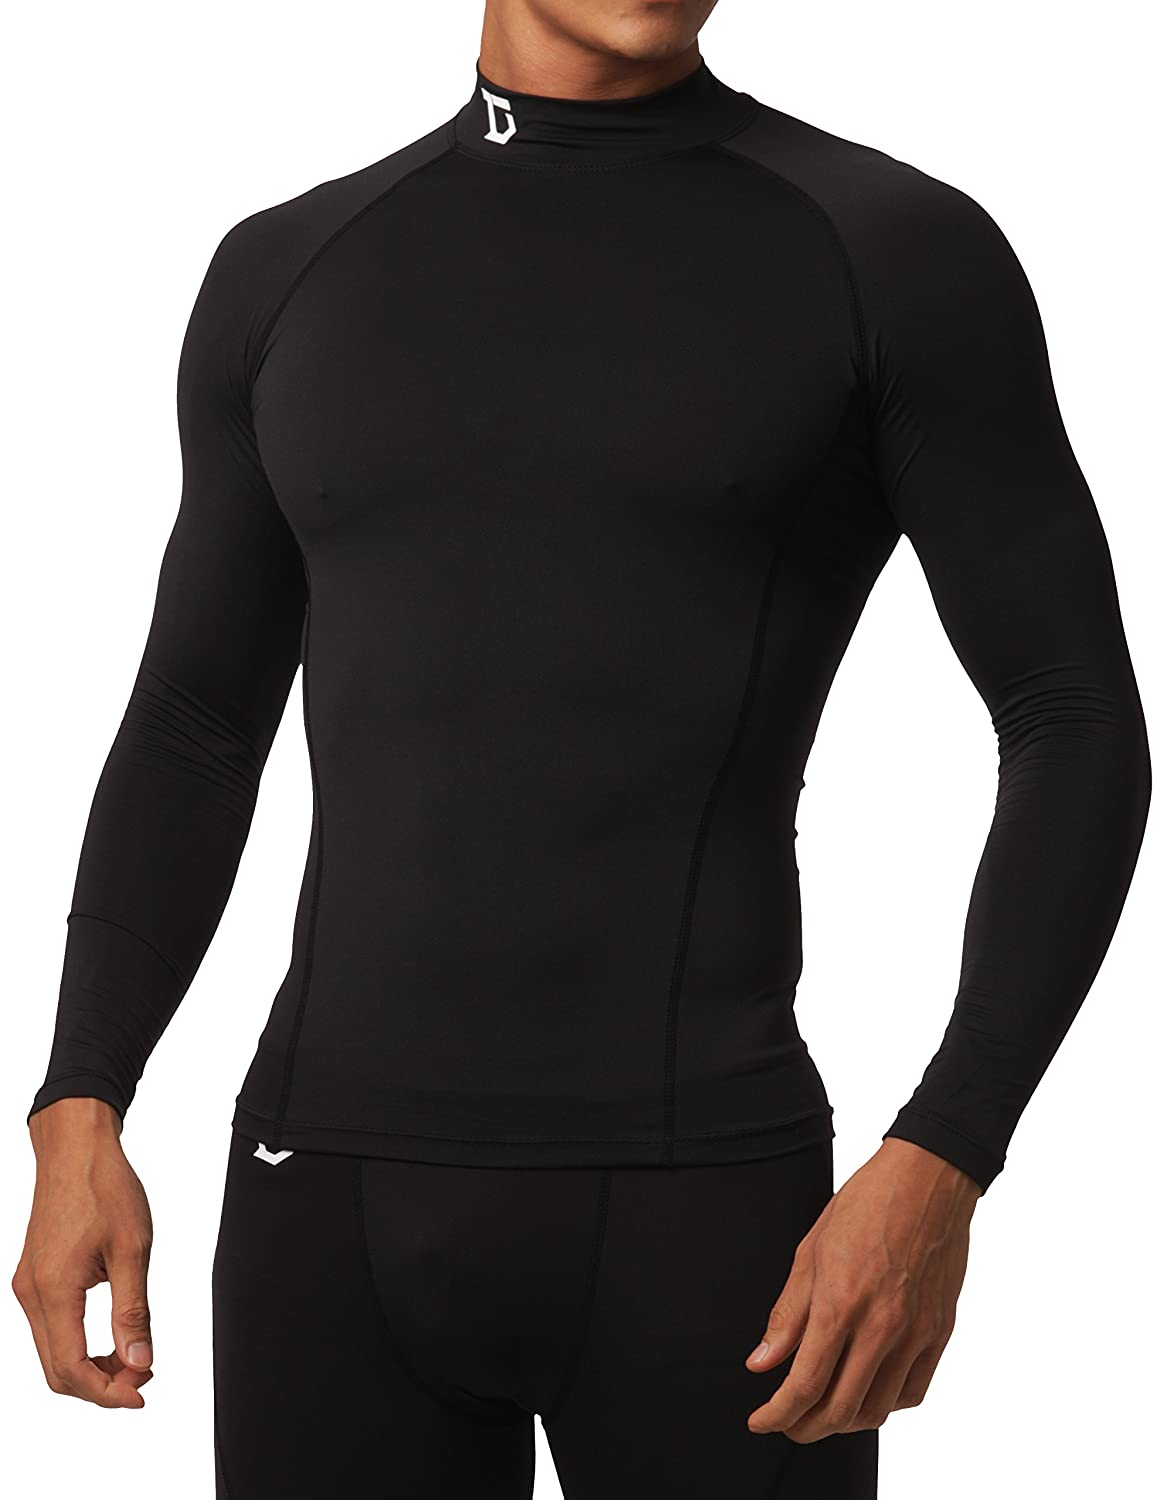 Defender Compression Men Shirt Under Soccer Golf Jerseys Football Gear